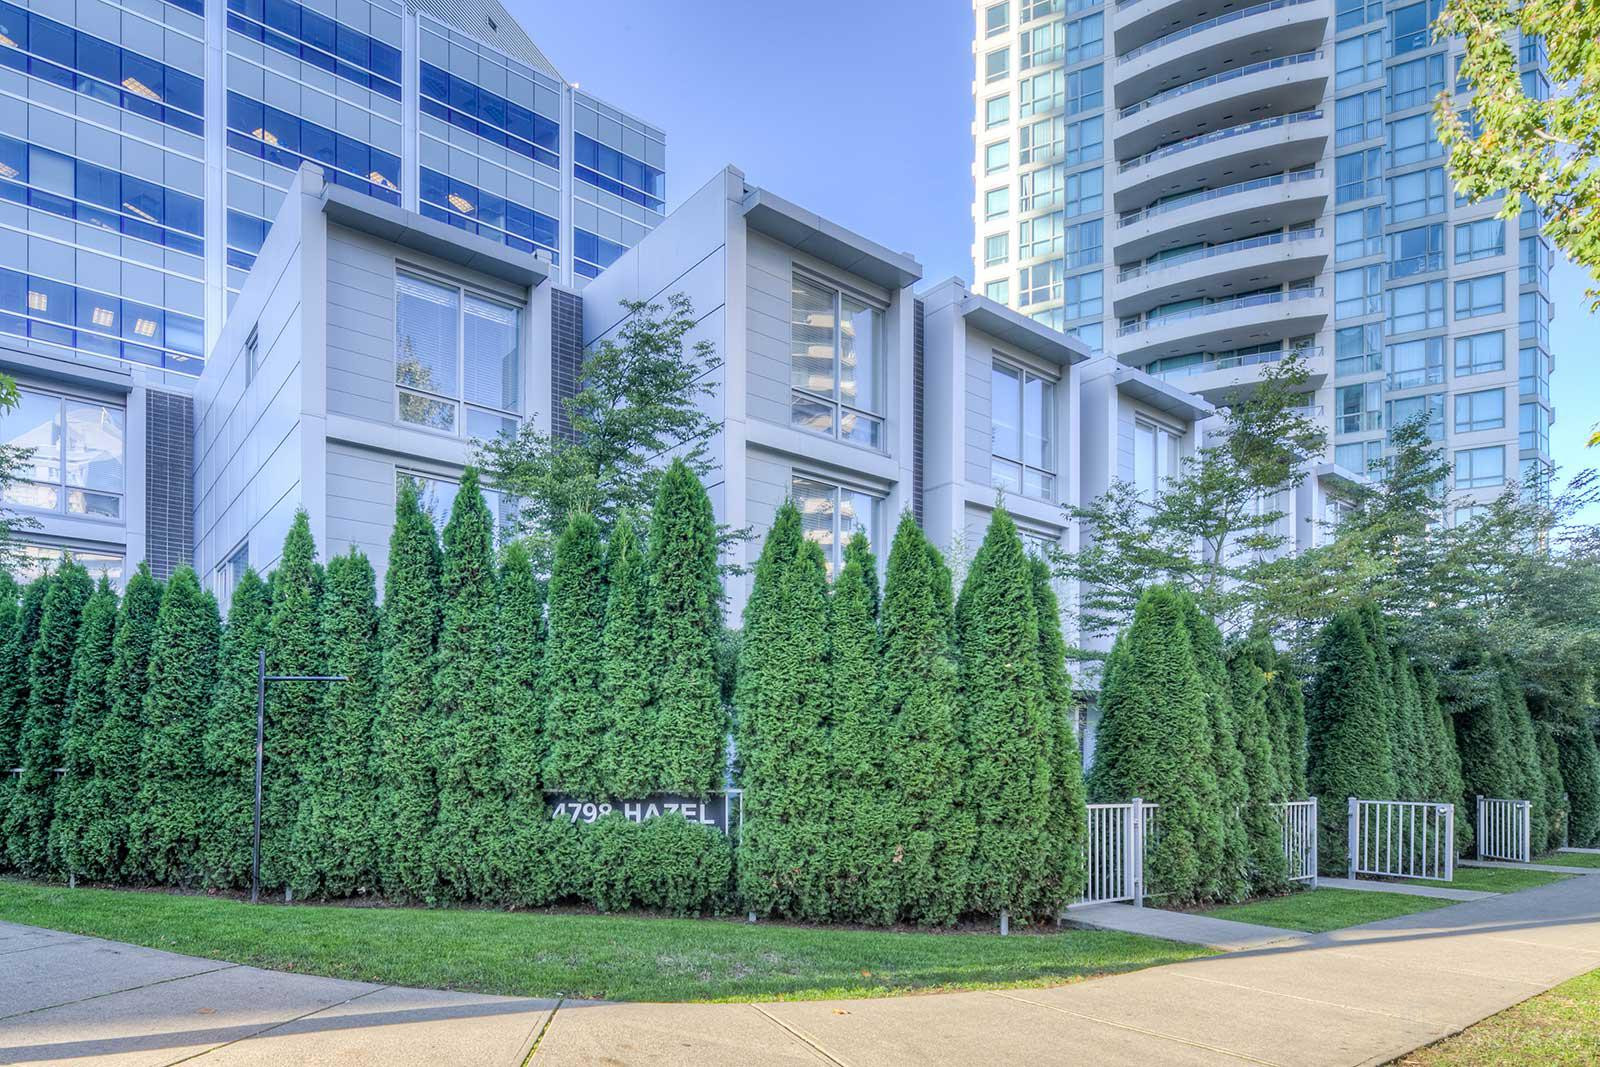 Centrepoint West at 4798 Hazel St, Burnaby 0